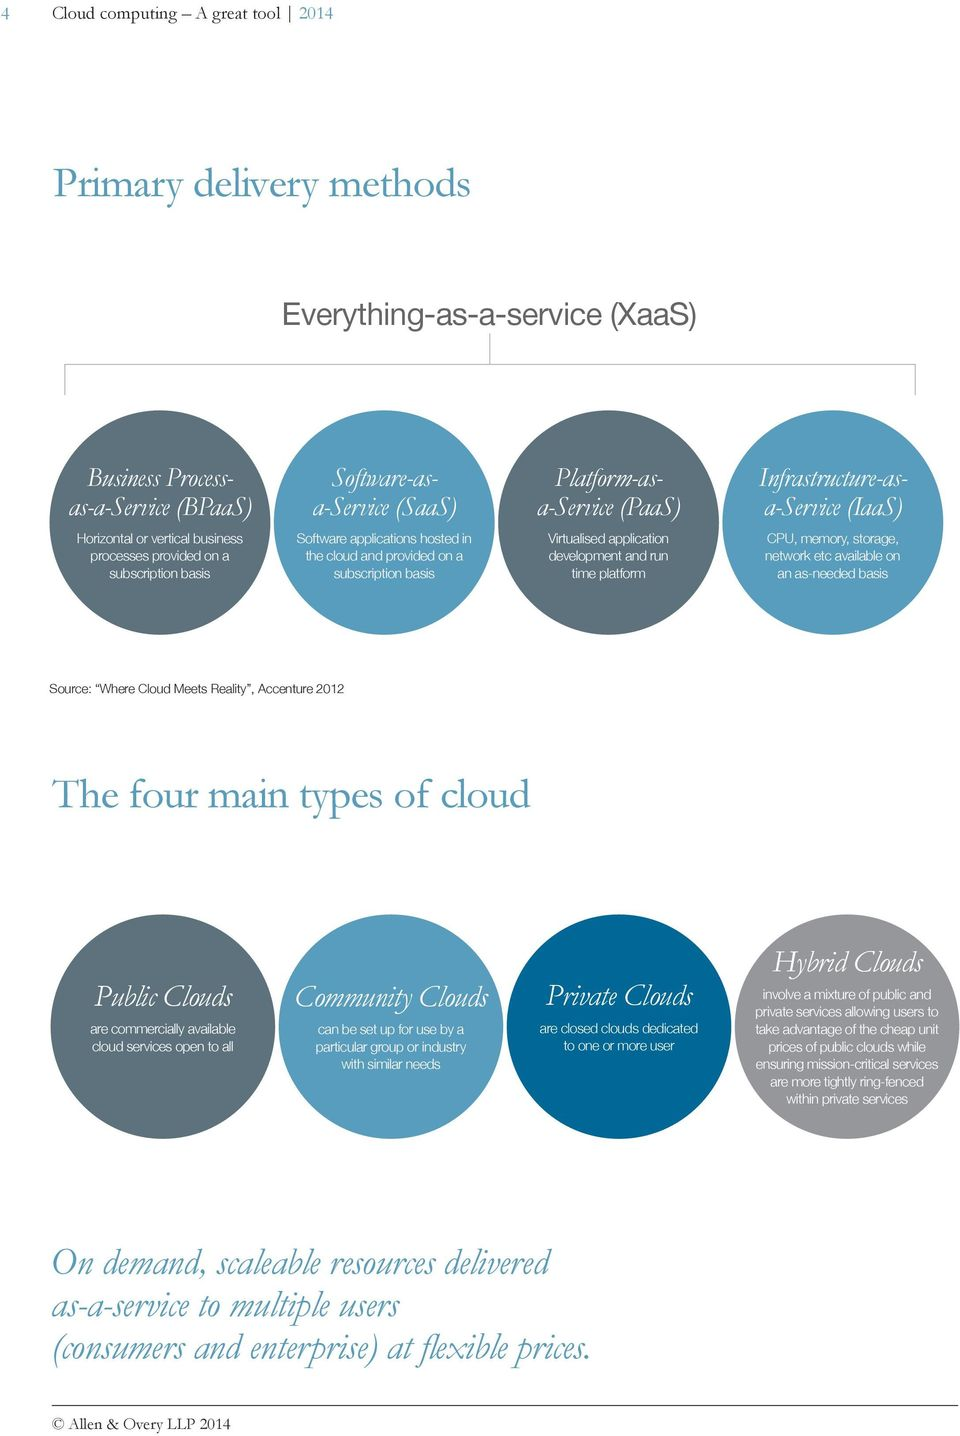 application development and run time platform CPU, memory, storage, network etc available on an as-needed basis Source: Where Cloud Meets Reality, Accenture 2012 The four main types of cloud Public